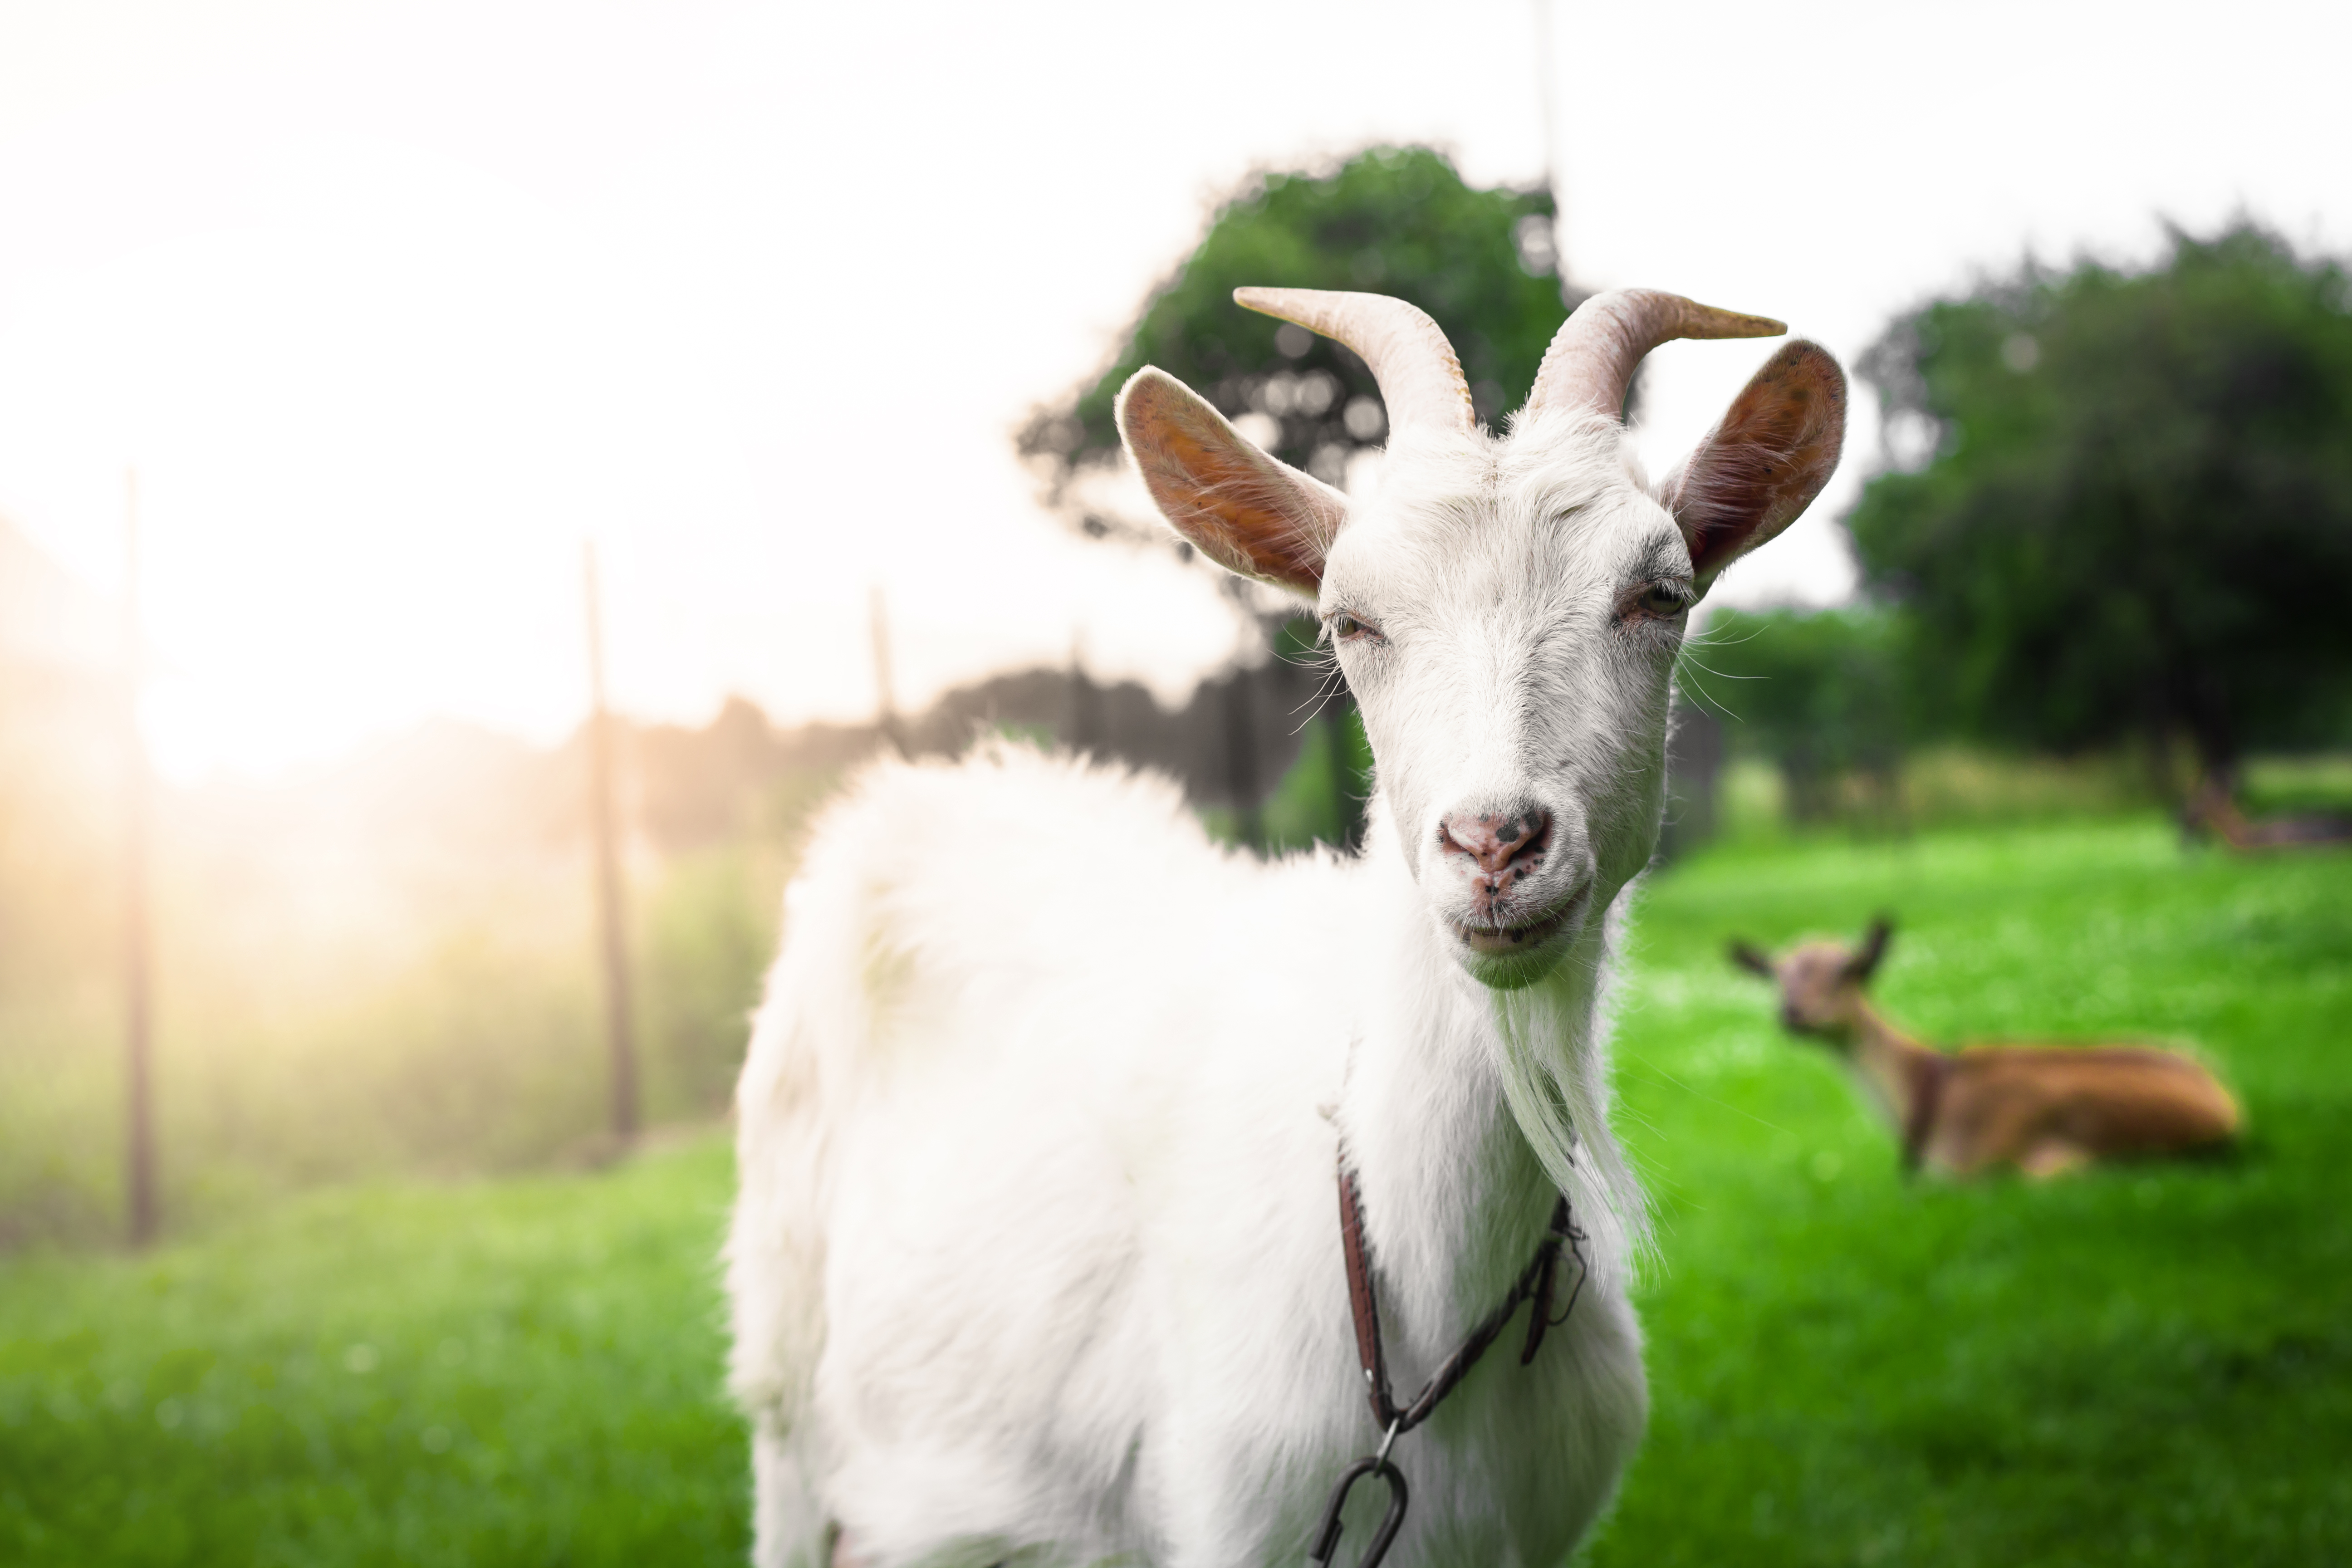 Gorgeous white goat's portrait on a sunset background.